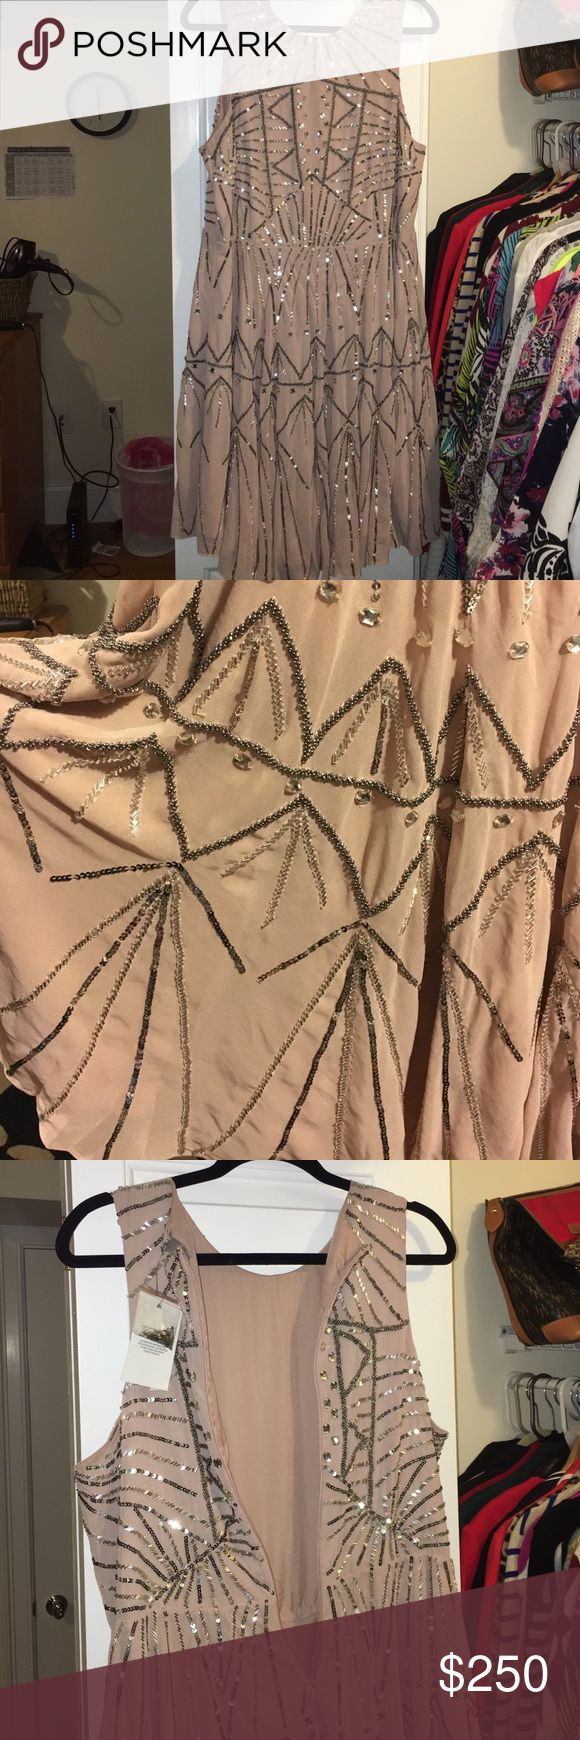 Asos Formal Dress Brand new, never worn. Bought for a wedding. Originally $300 with shipping. Back zipper and hangs right at the knee. I'm 5'6. It's a beautiful Aztec print and shines. It's a creamy pinkish color. ASOS Curve Dresses Prom